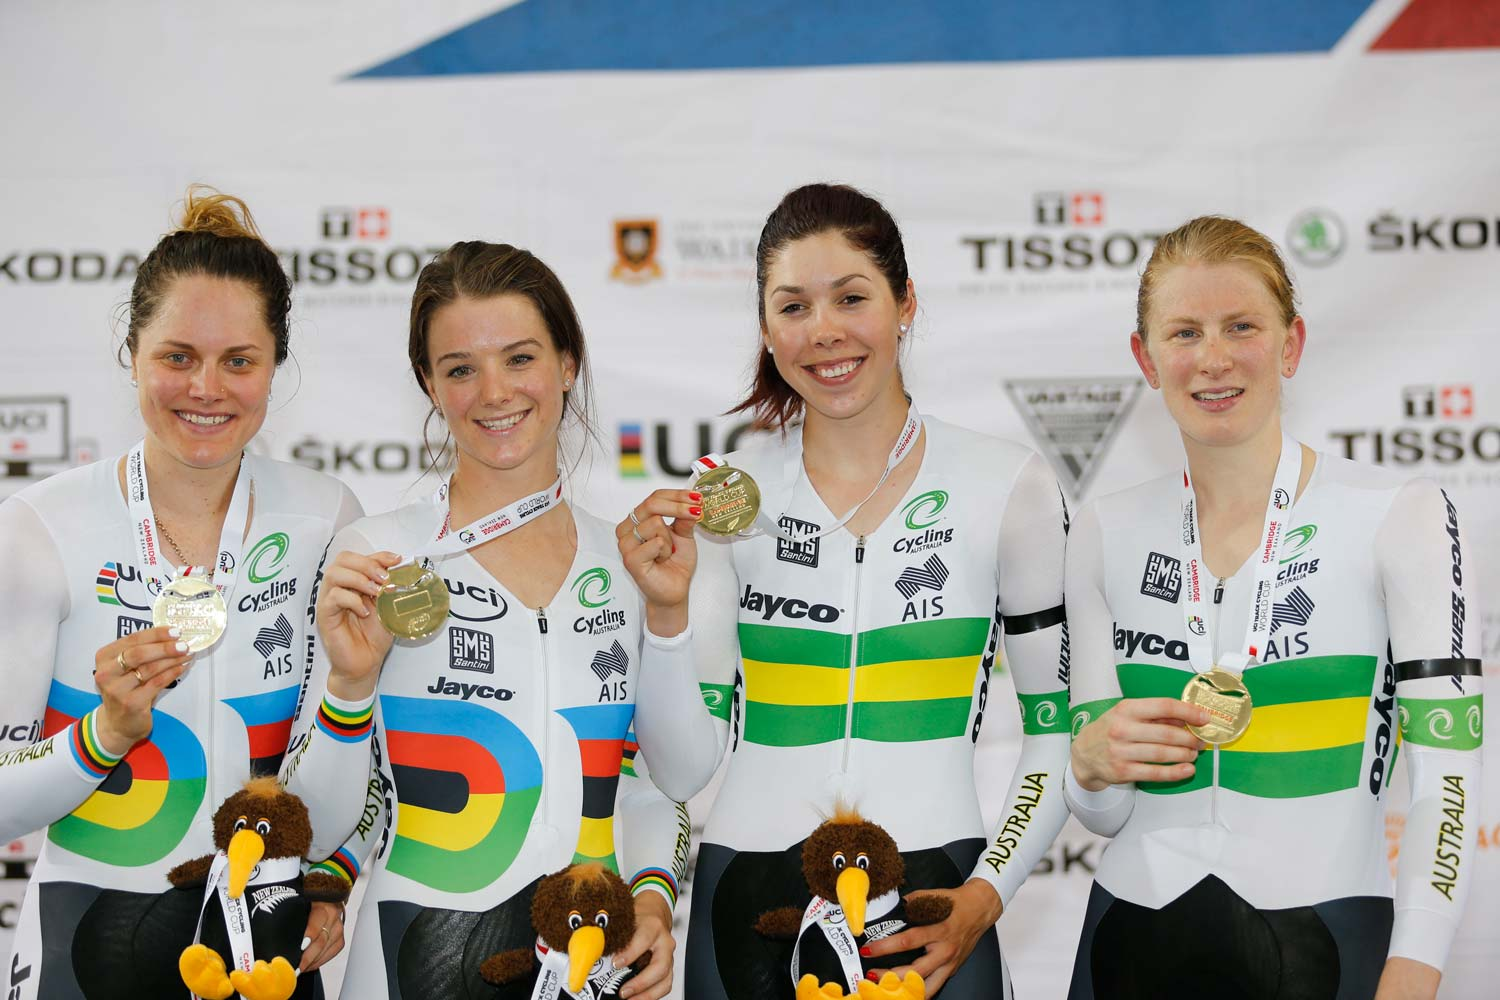 Ashlee Ankudinoff, Amy Cure, Georgia Baker and Isabella King at the New Zealand round of the World Cup. Photo: Yuzuru Sunada